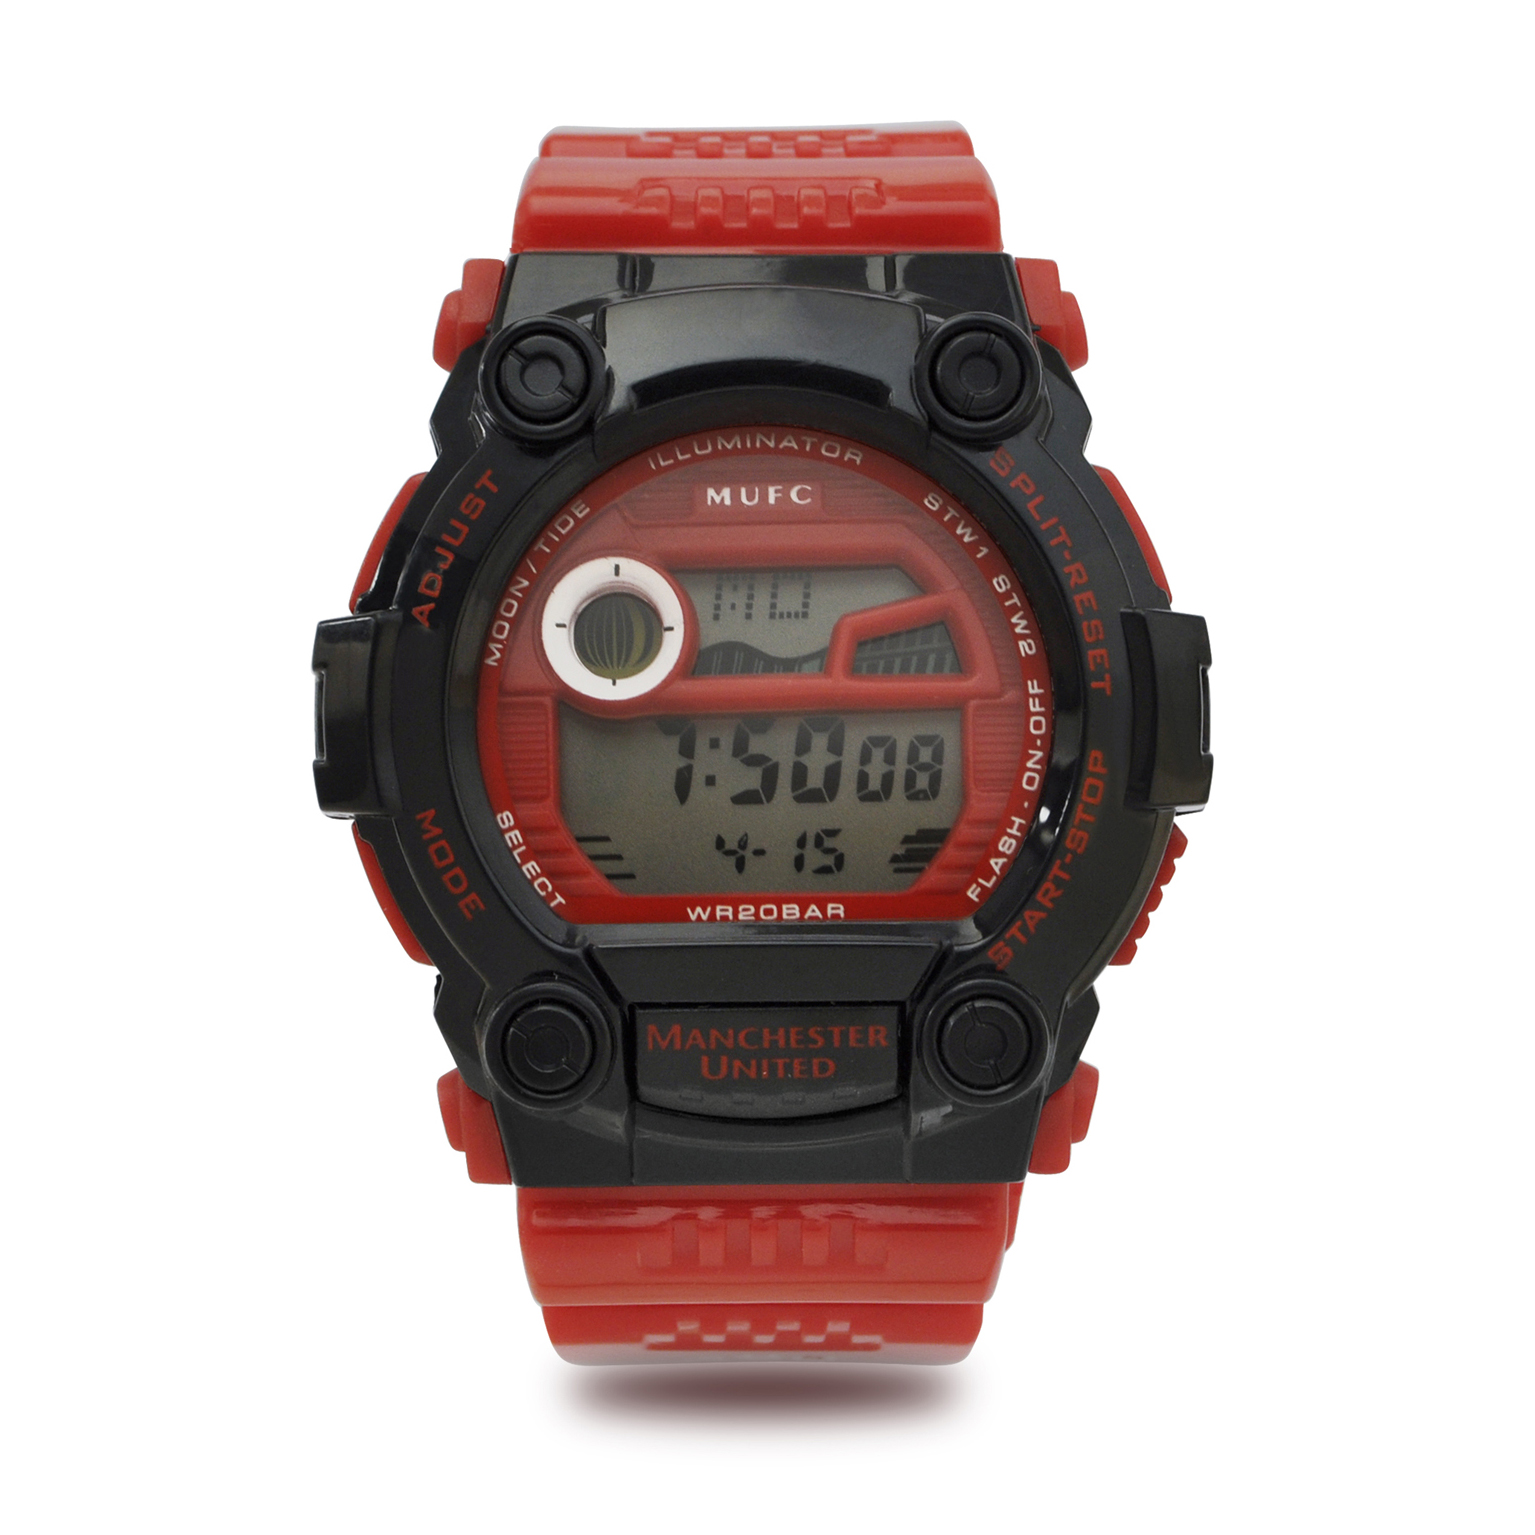 Manchester United Digital Watch - Red/Black